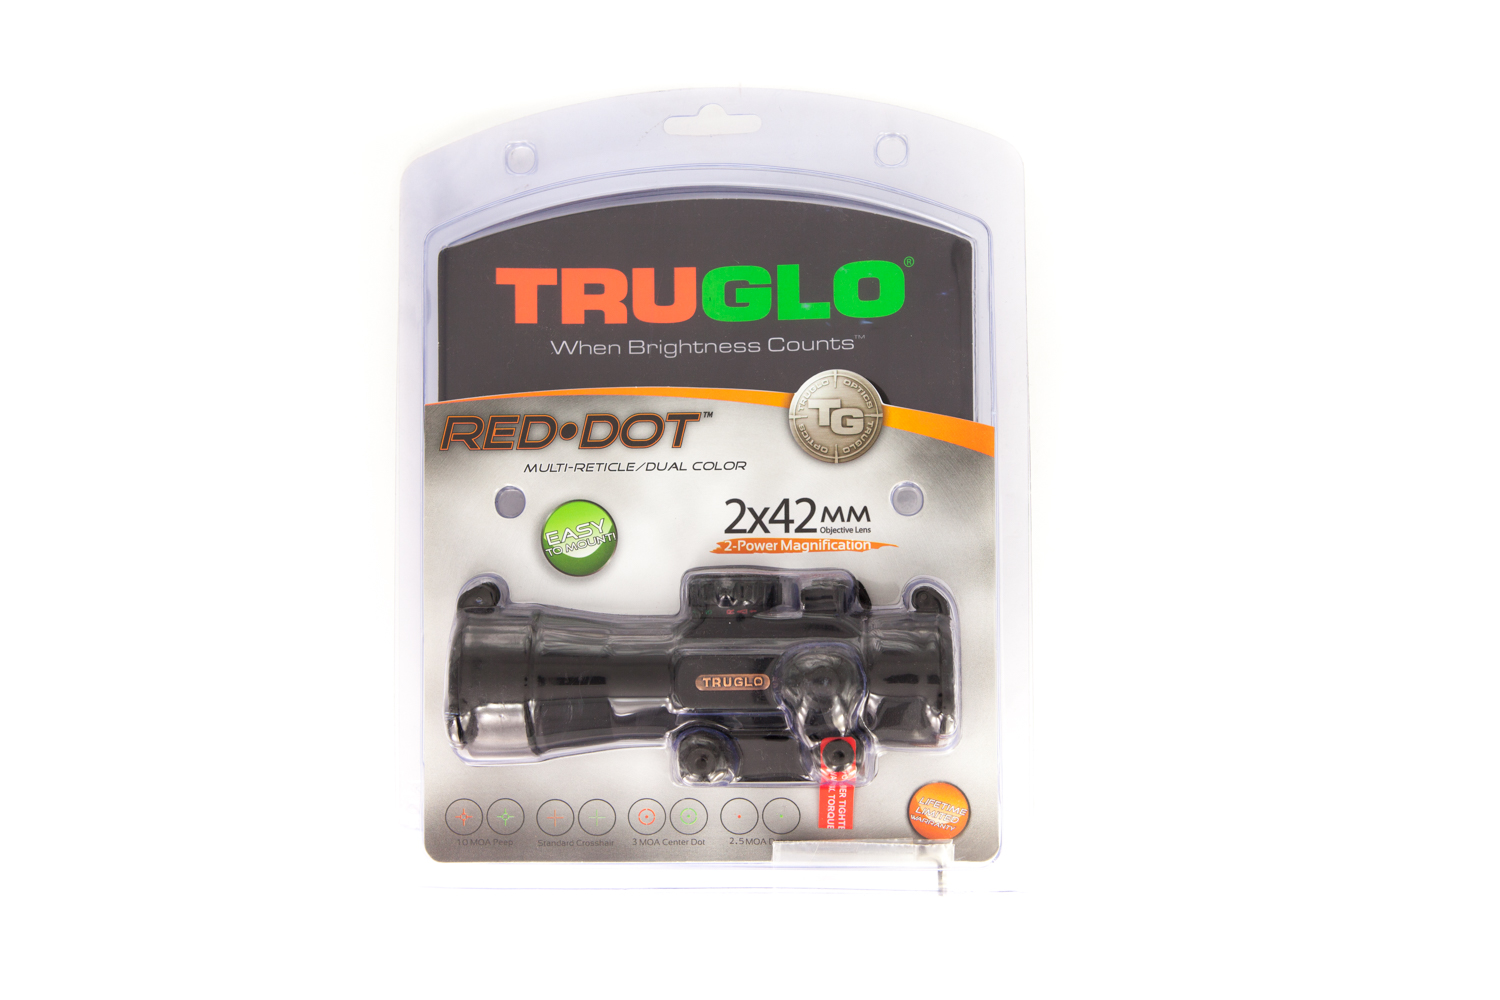 TRUGLO Red Dot 2x42 Dual Color